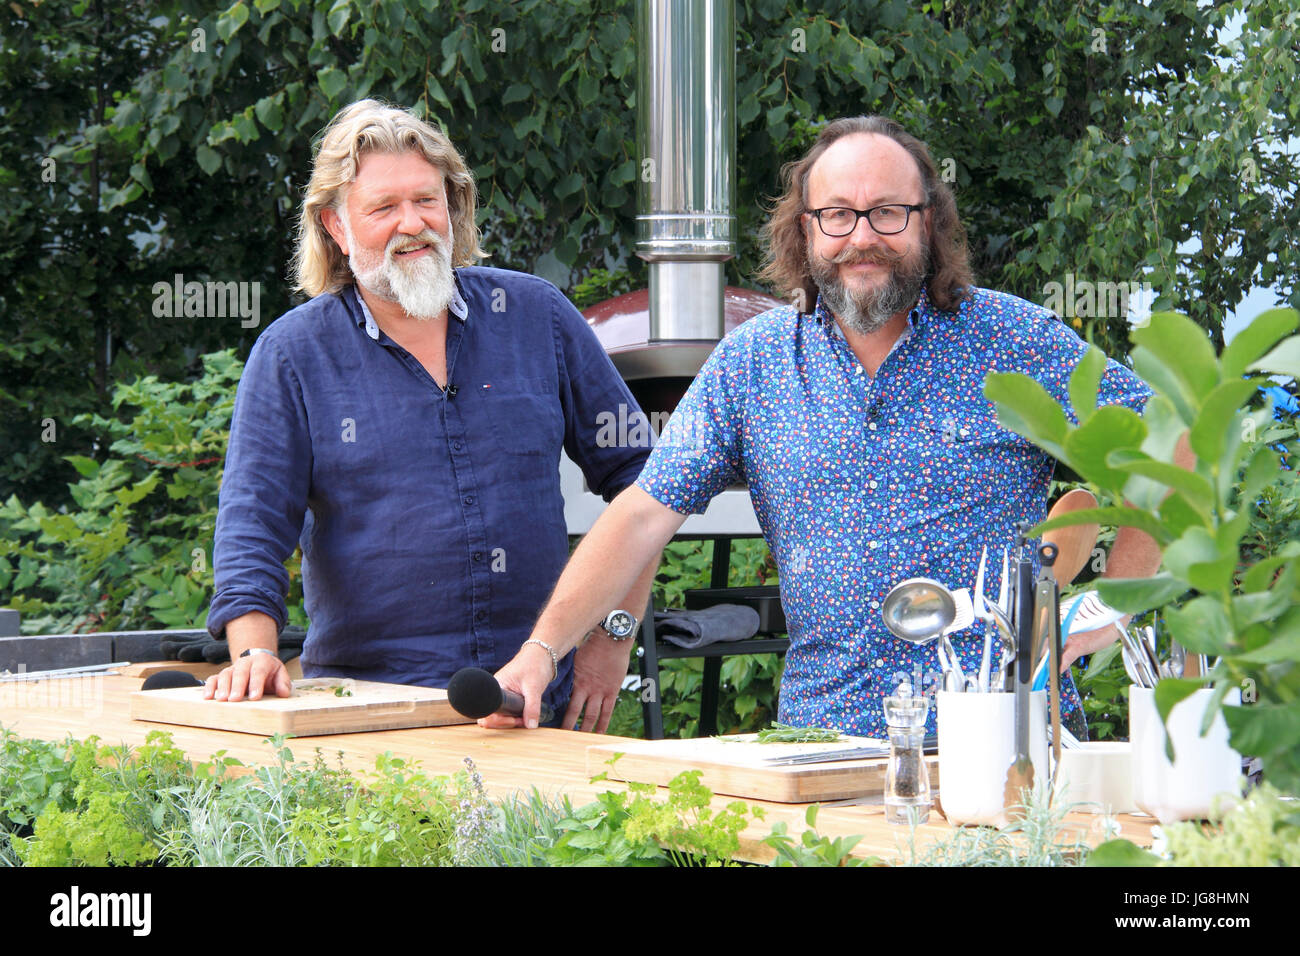 Hairy Bikers Si King and Dave Myers, 'Kitchen Garden Live'. Designed Juliet Sargeant. RHS Hampton Court - Stock Image